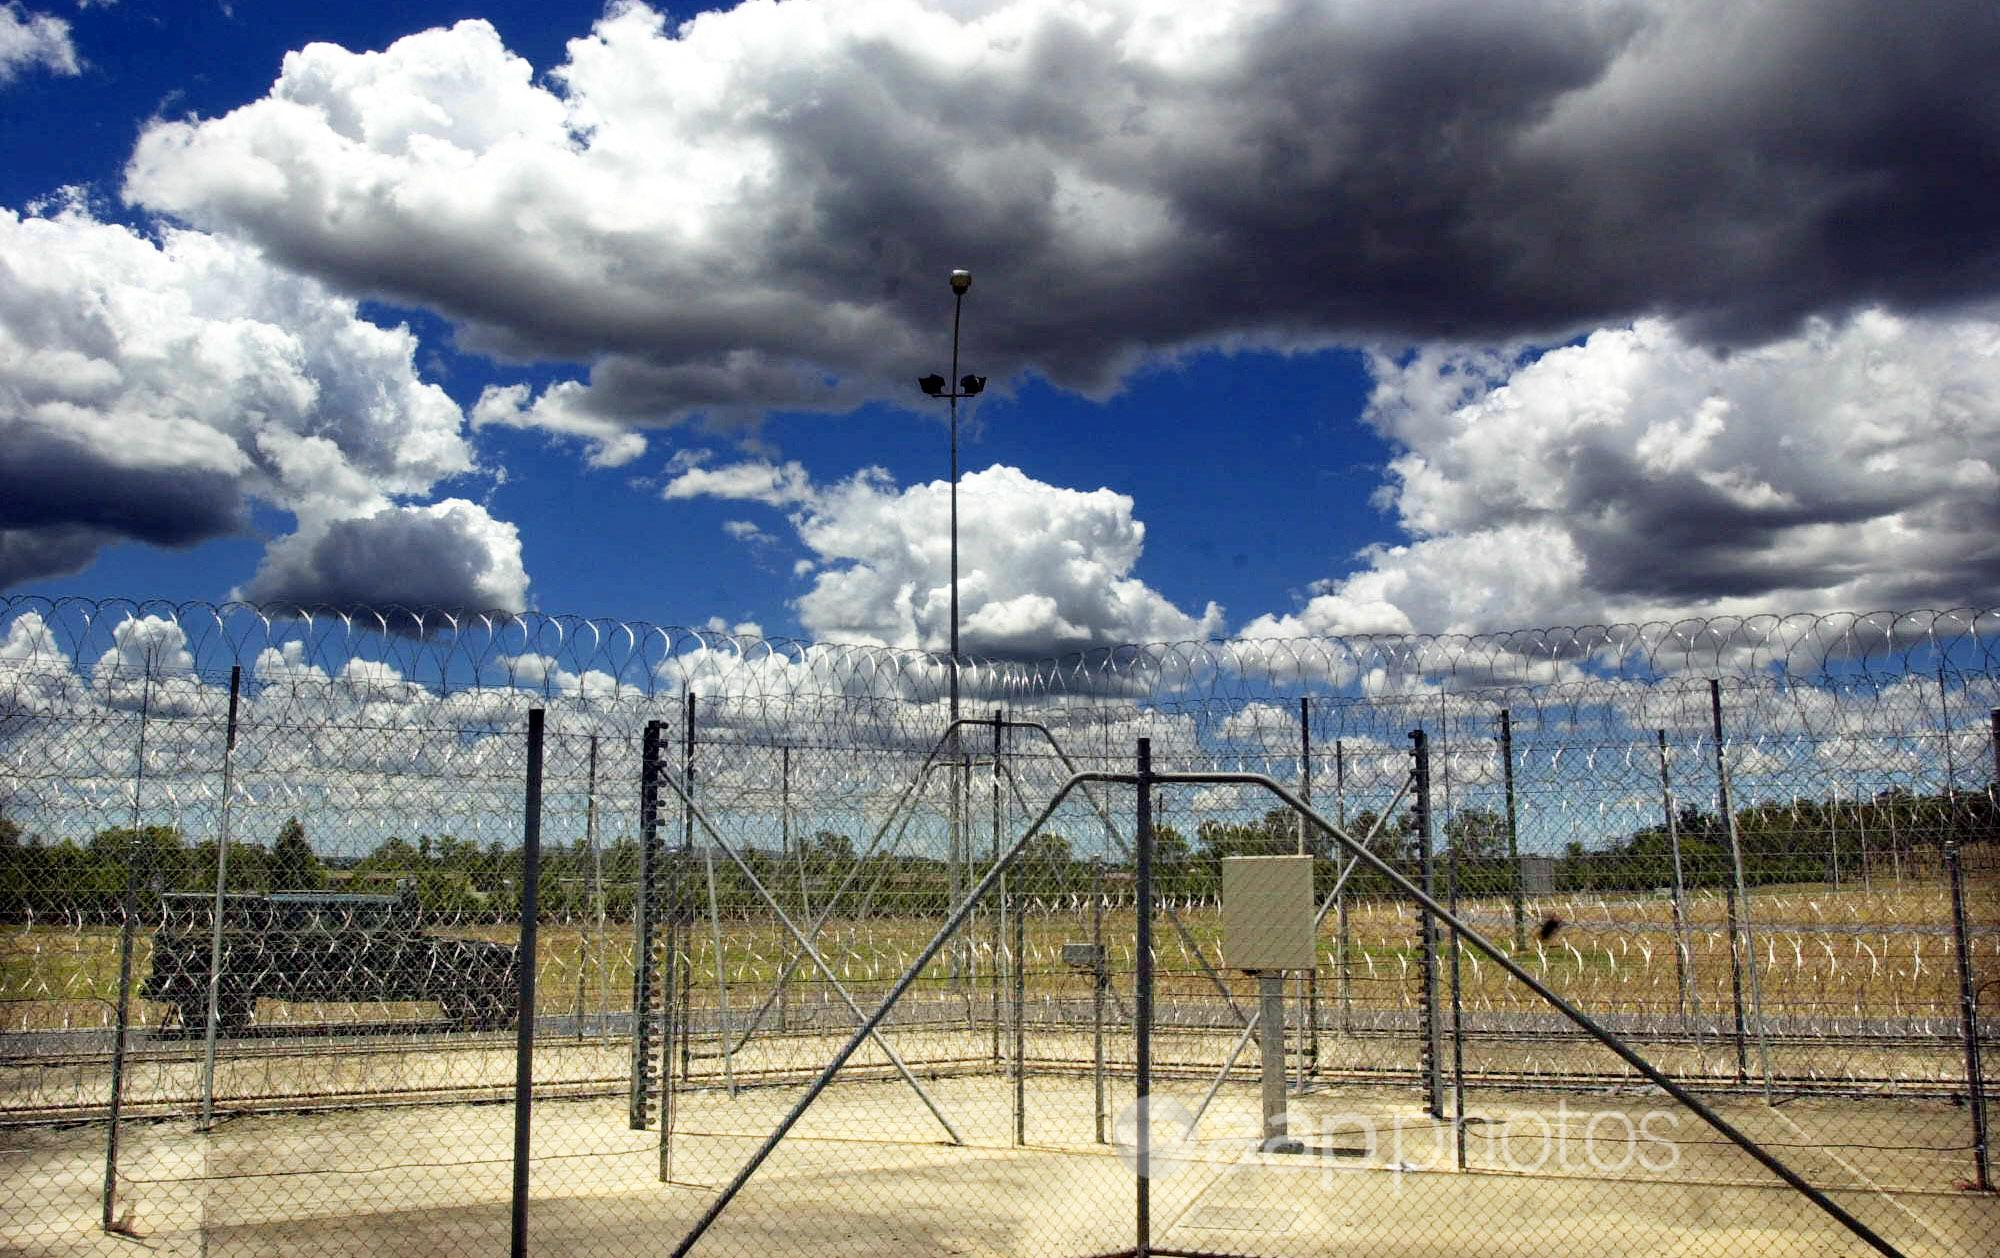 Razor wire fence at a correctional centre.